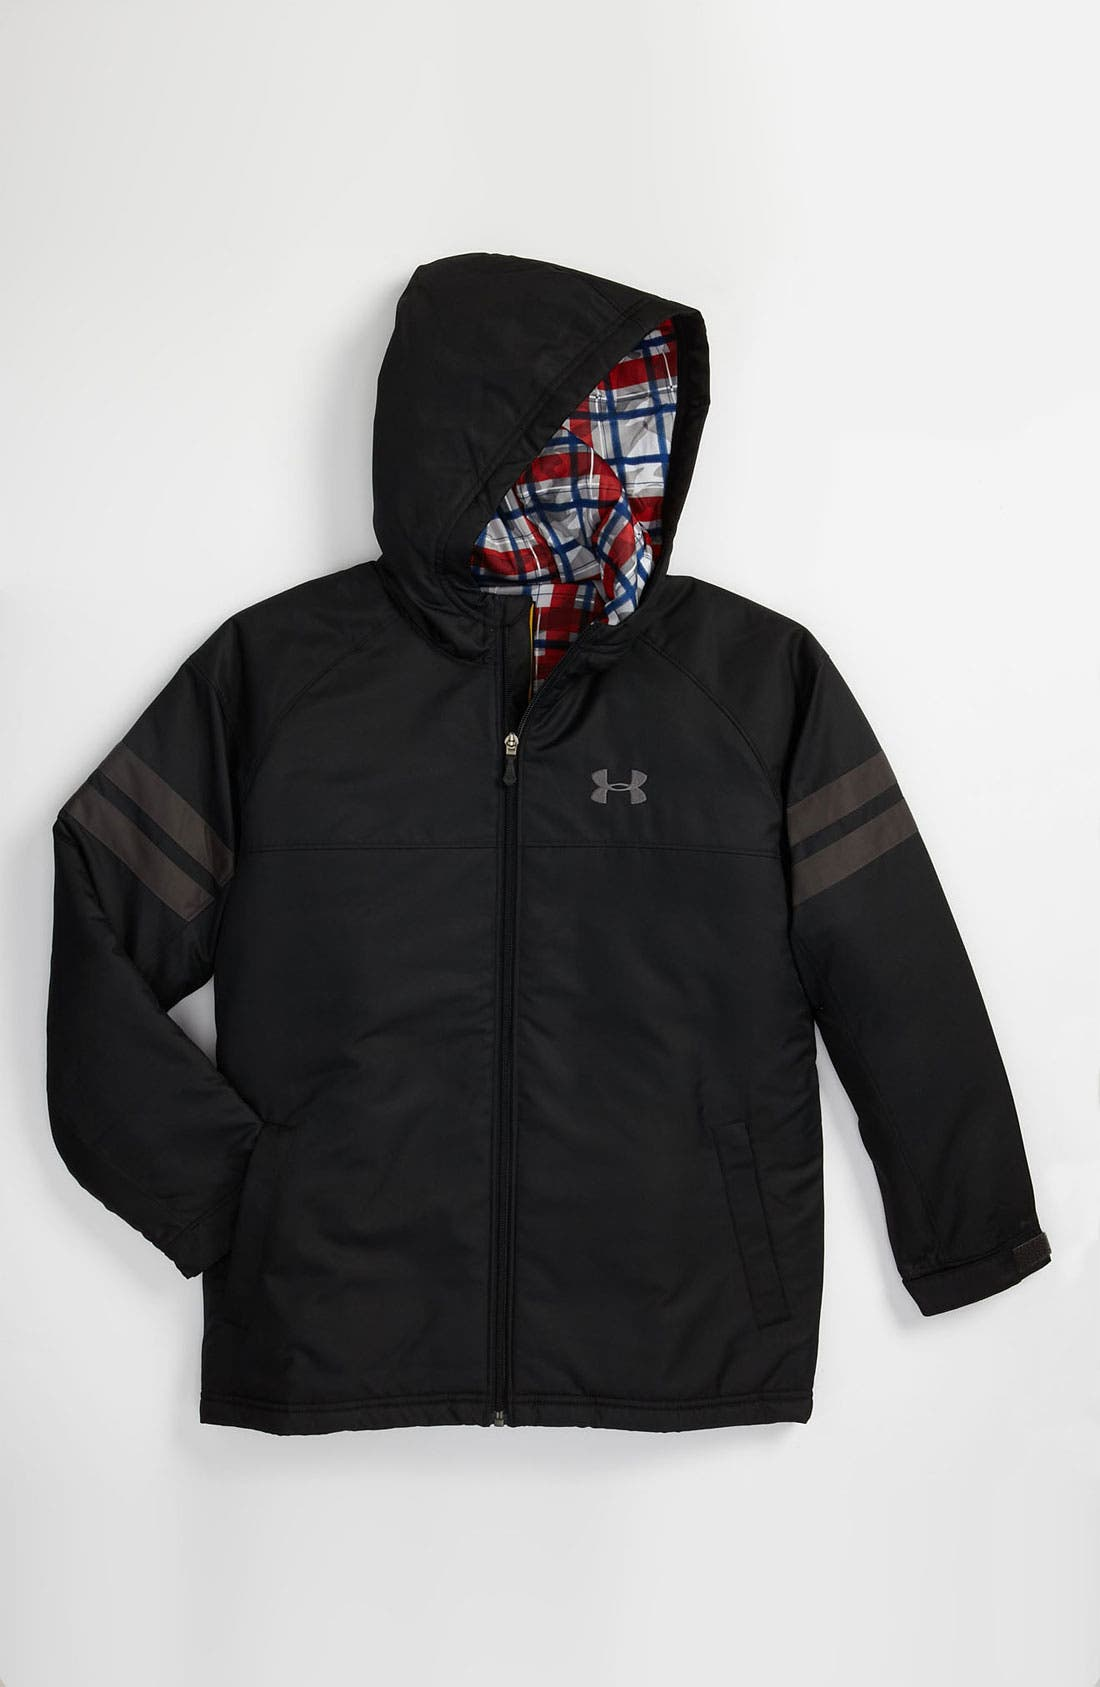 Alternate Image 1 Selected - Under Armour 'Universus' Jacket (Big Boys)